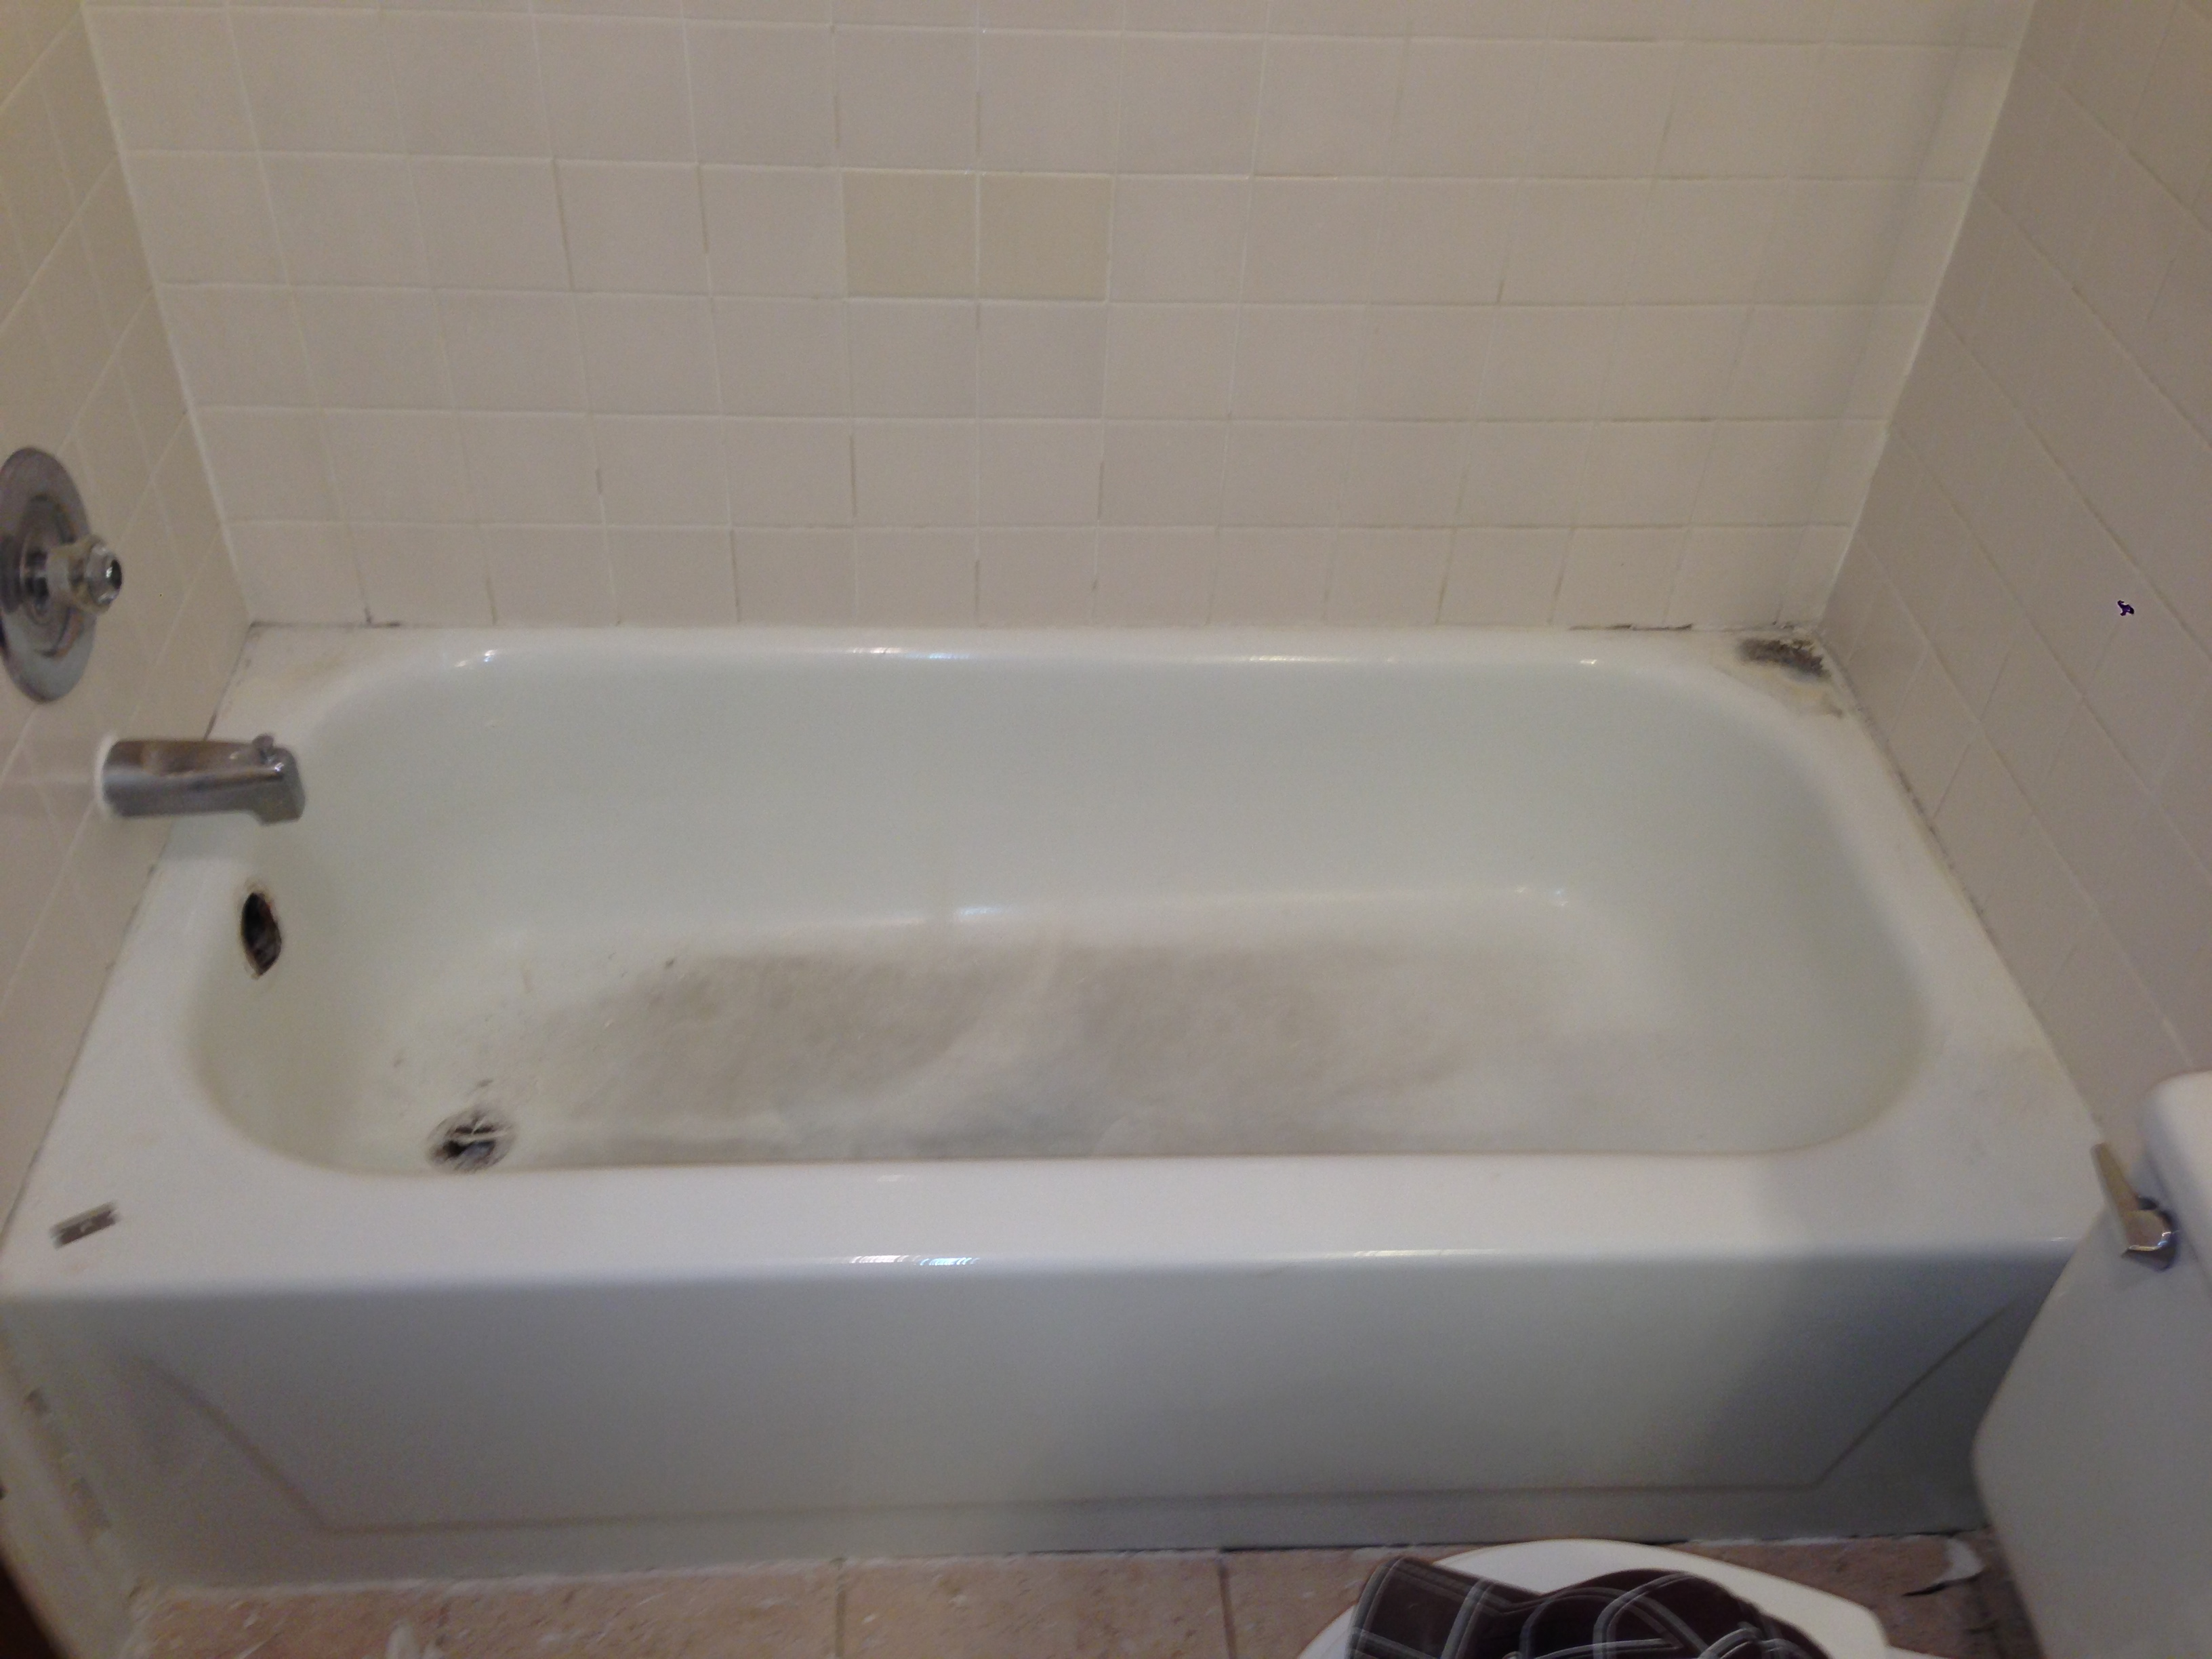 Lovely Install A Bath Spout Big Bathroom Fixture Stores Clean 29 Inch Bathroom Vanity With Sink Very Small Bathtubs Uk Old Small Bathroom Pictures Before And After ColouredPainted Bathroom Floors Pinterest Tub Reglazing In Denver   Denver Tub, And Bathroom RepairsColorado ..